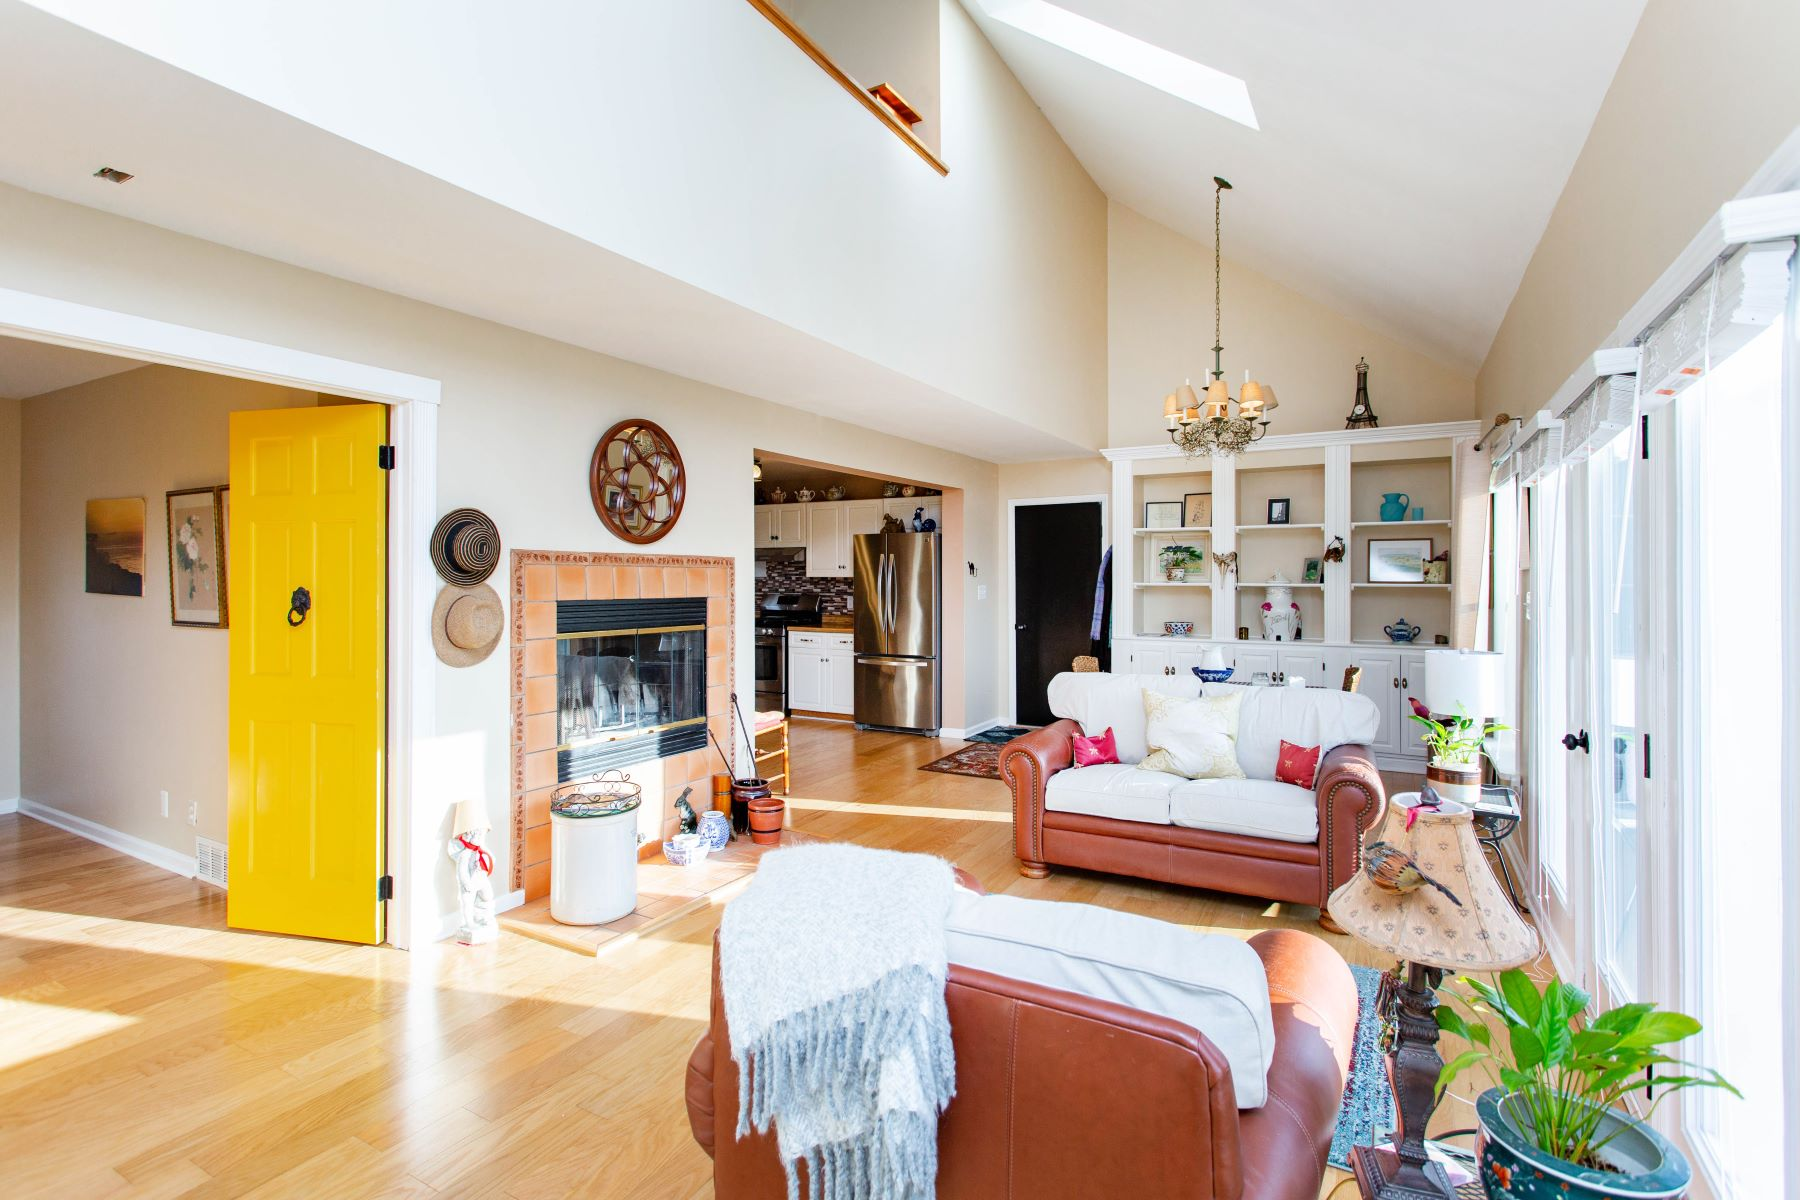 Single Family Homes for Sale at Artist Country Retreat 148 Haas Rd Schuylerville, New York 12871 United States